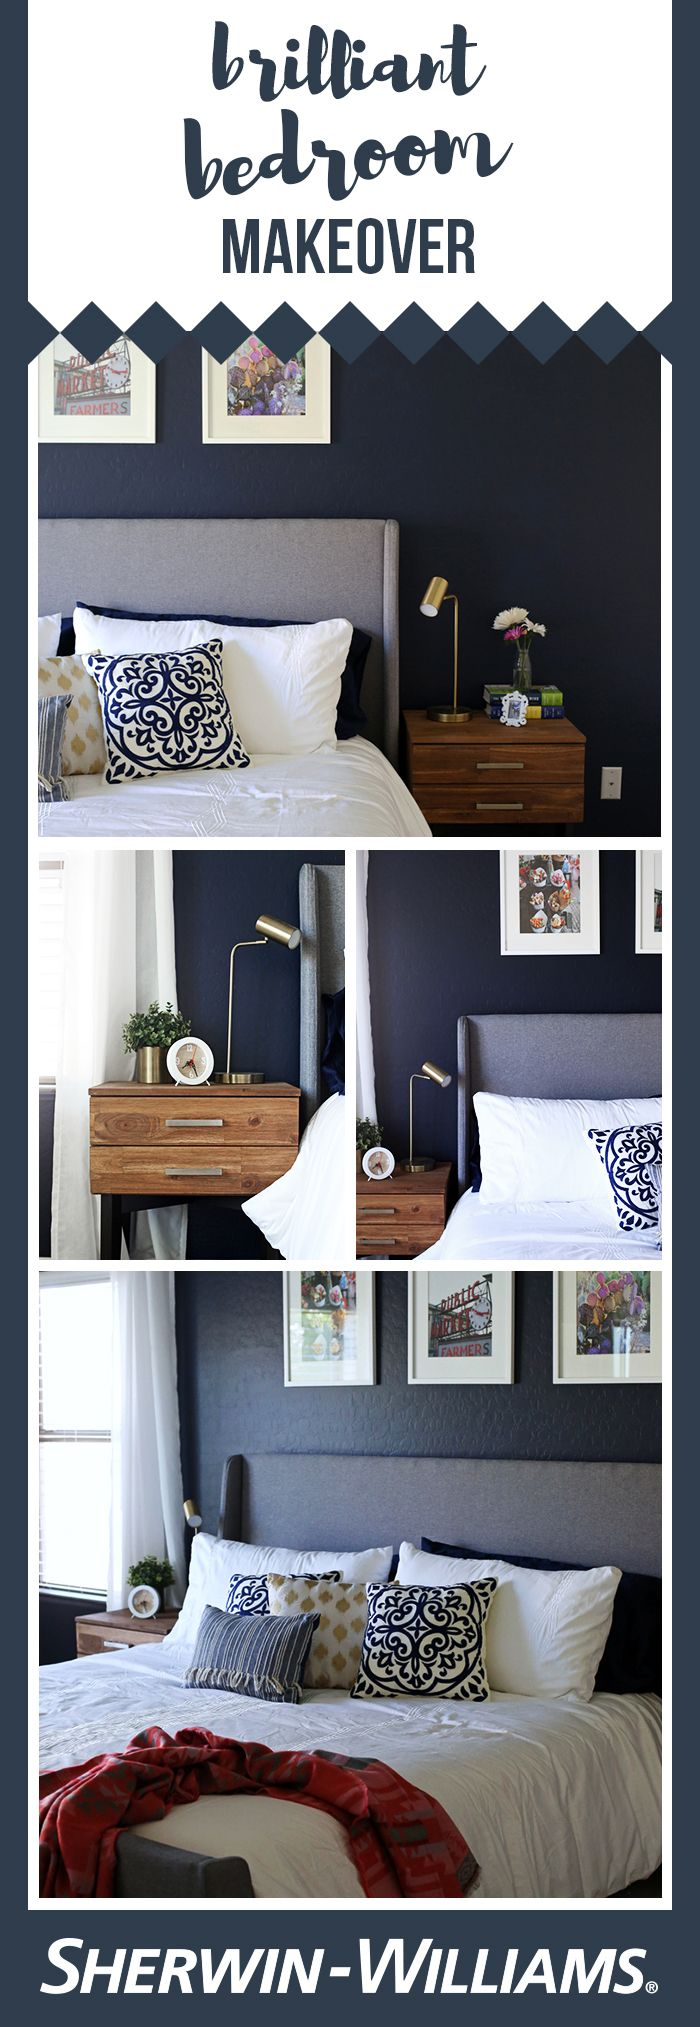 225 best color hues by sherwin williams images on pinterest